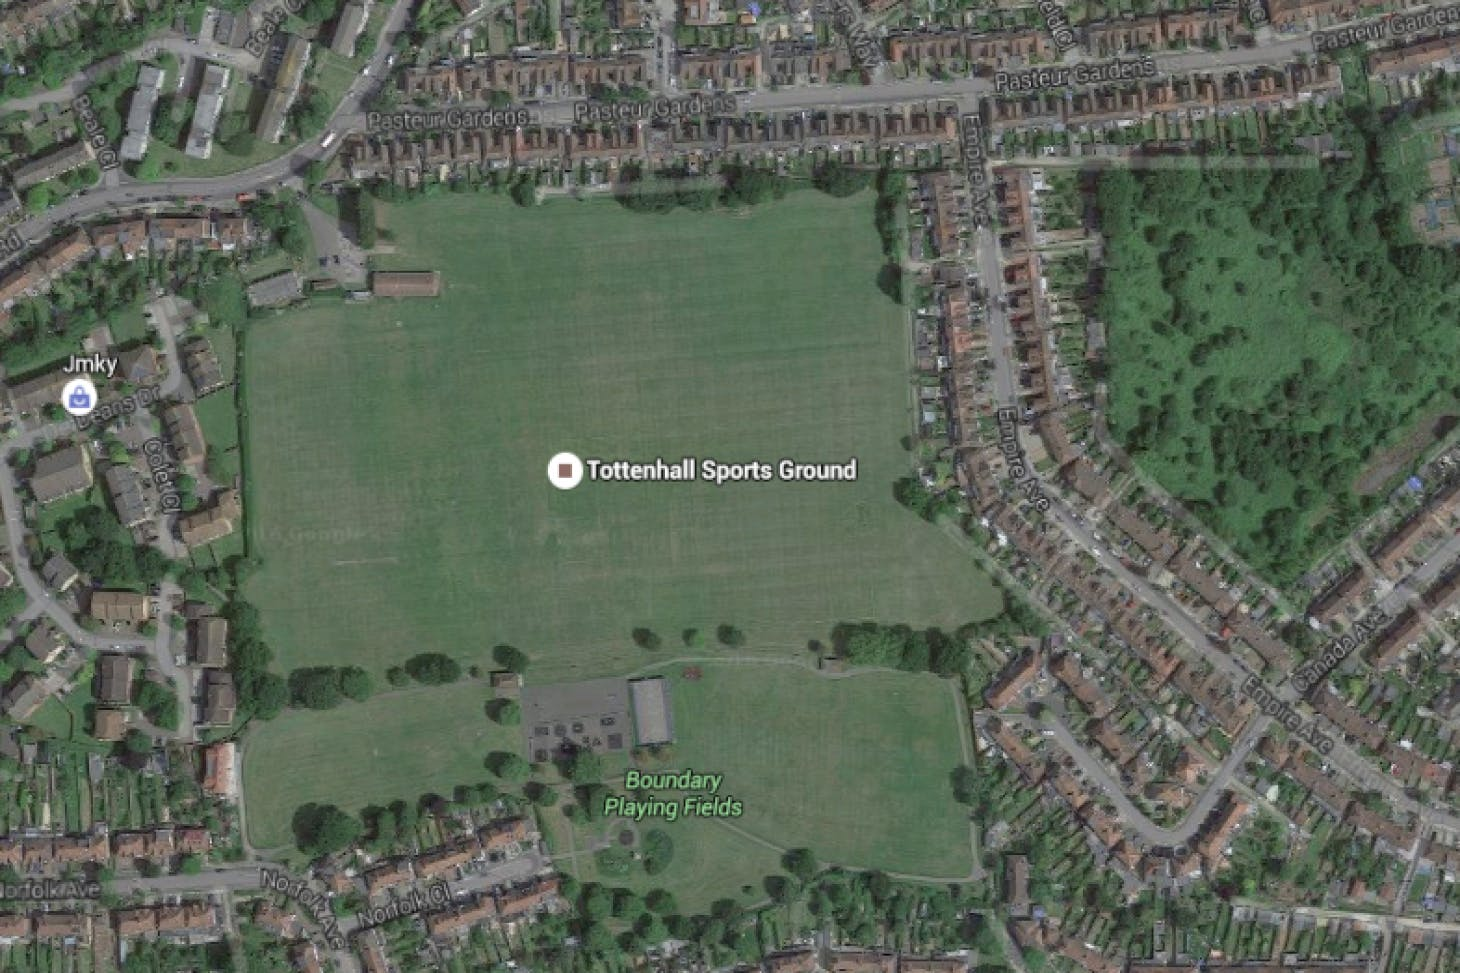 Tottenhall Recreation Ground 11 a side | Grass football pitch